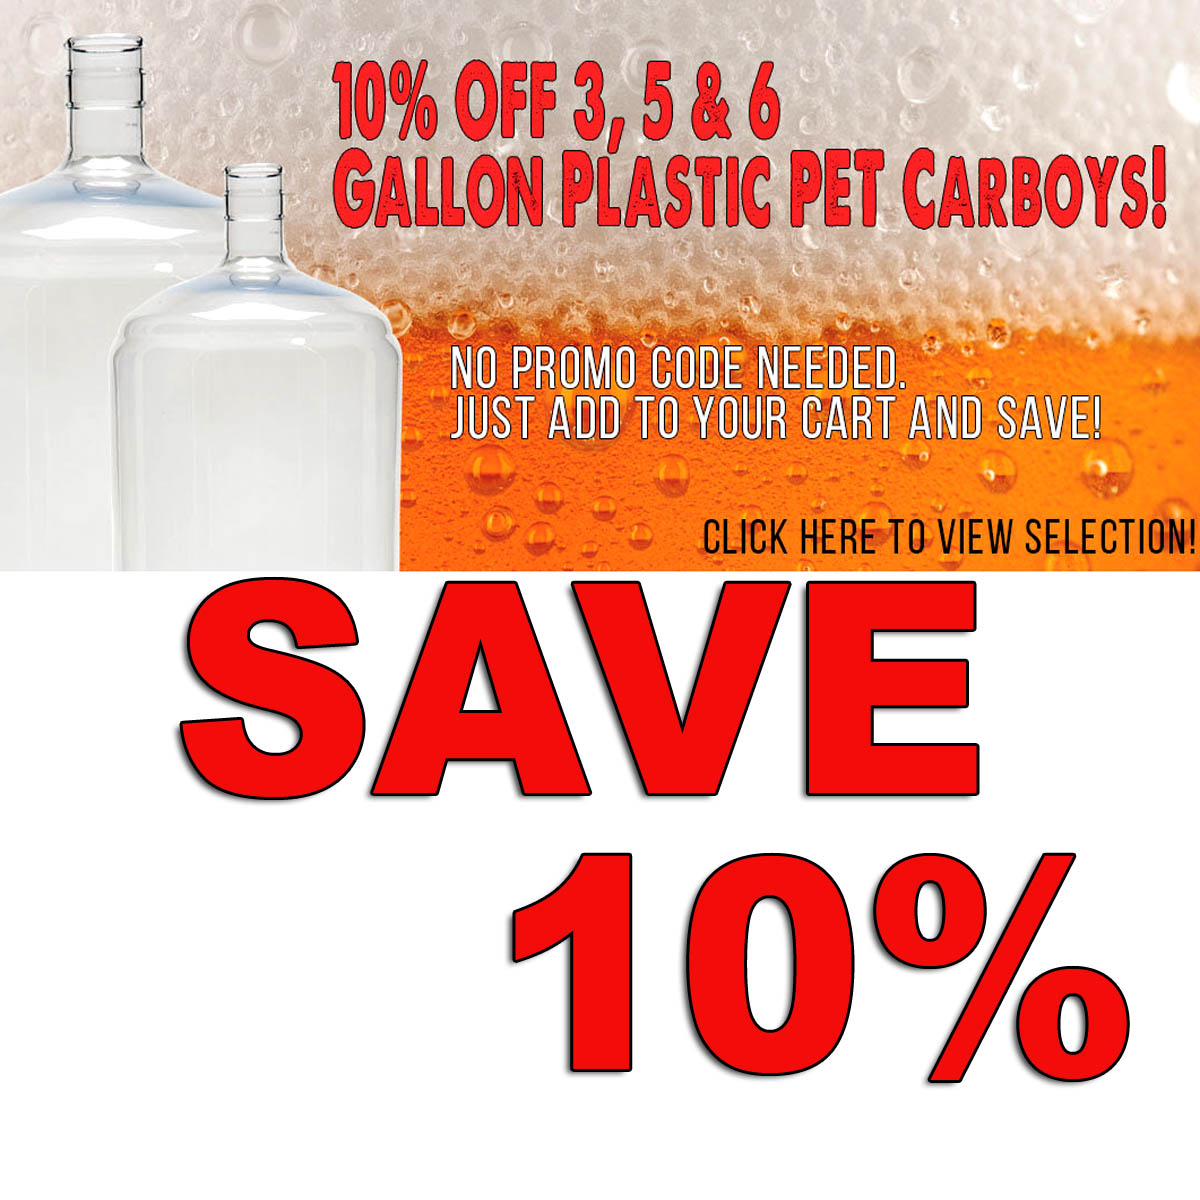 Home Wine Making Coupon Codes for Save 10% On PET Plastic Carboys + Free Shipping Over $59 Coupon Code